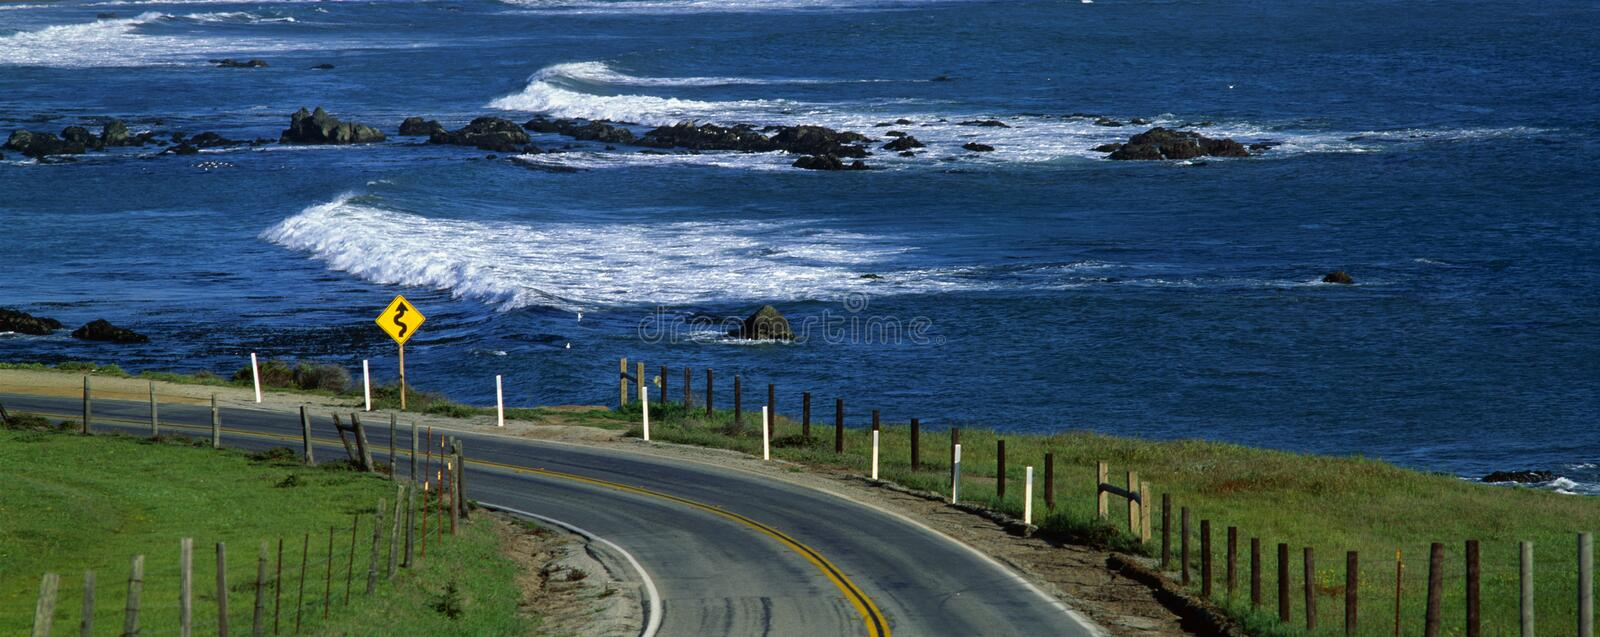 Pacific Coast Highway with ocean, CA. This is Route 1, also known as the Pacific Coast Highway. The ocean is to the right of the road which curves around a bend stock photos